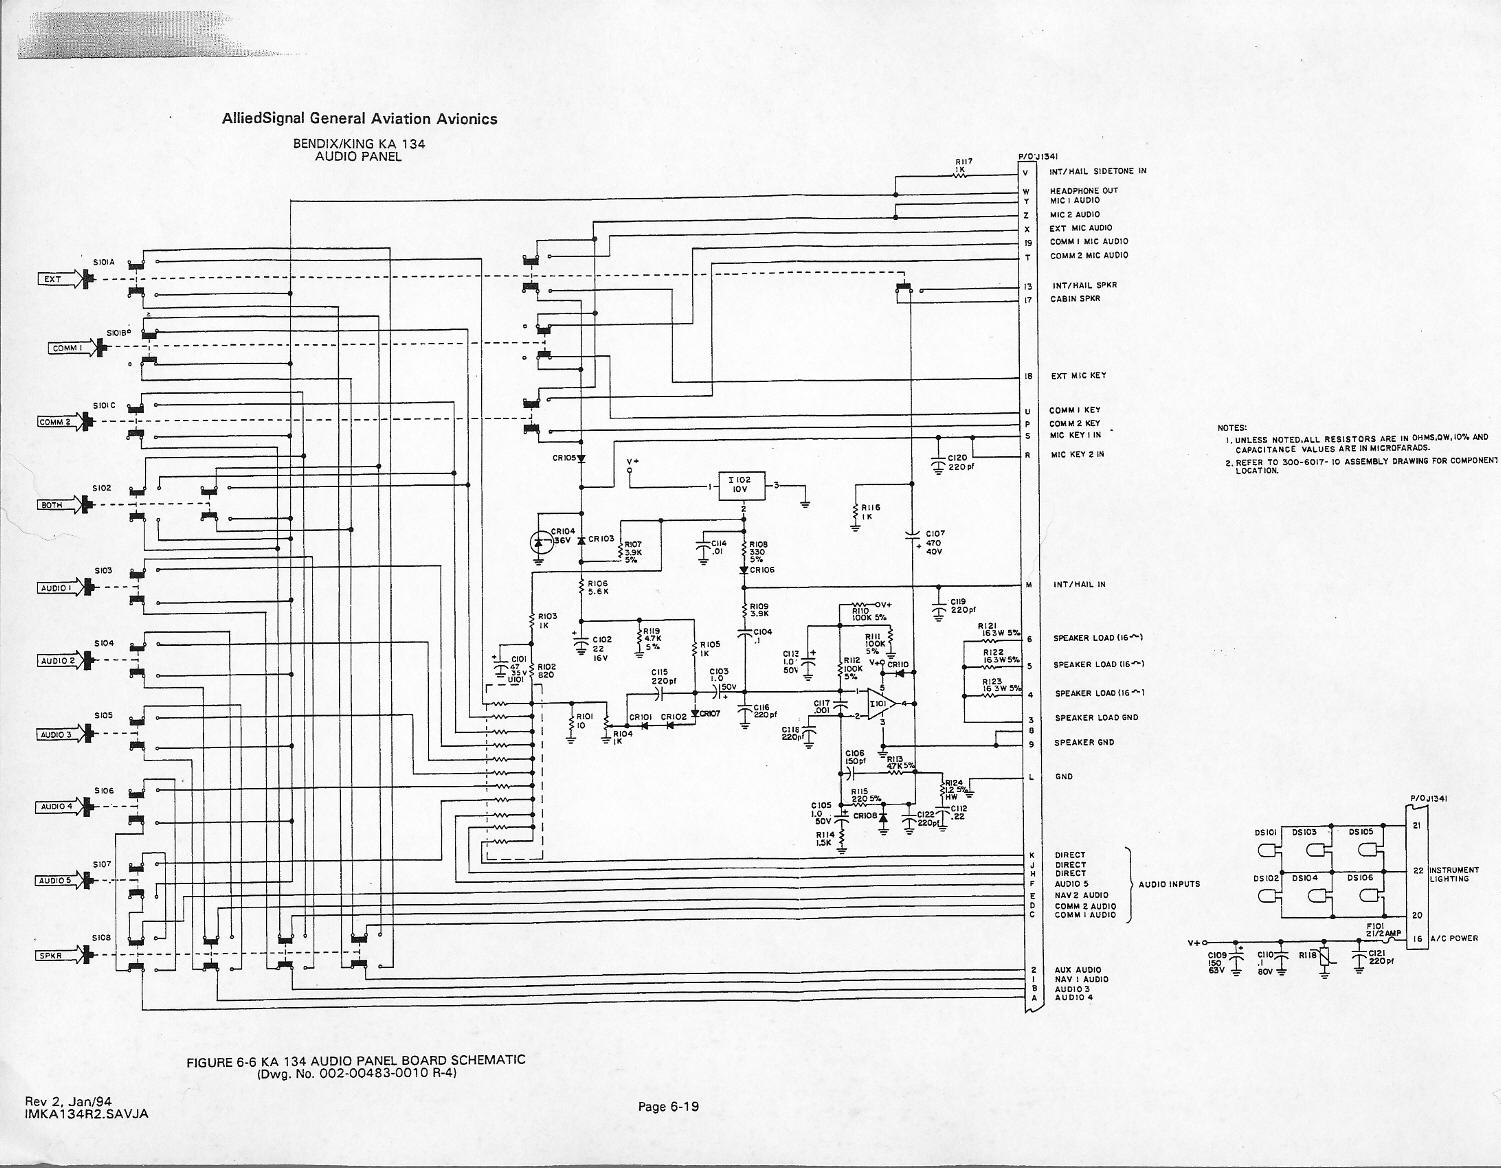 ka134_r4 first flight prep king ka 134 audio panel wiring diagram at gsmx.co